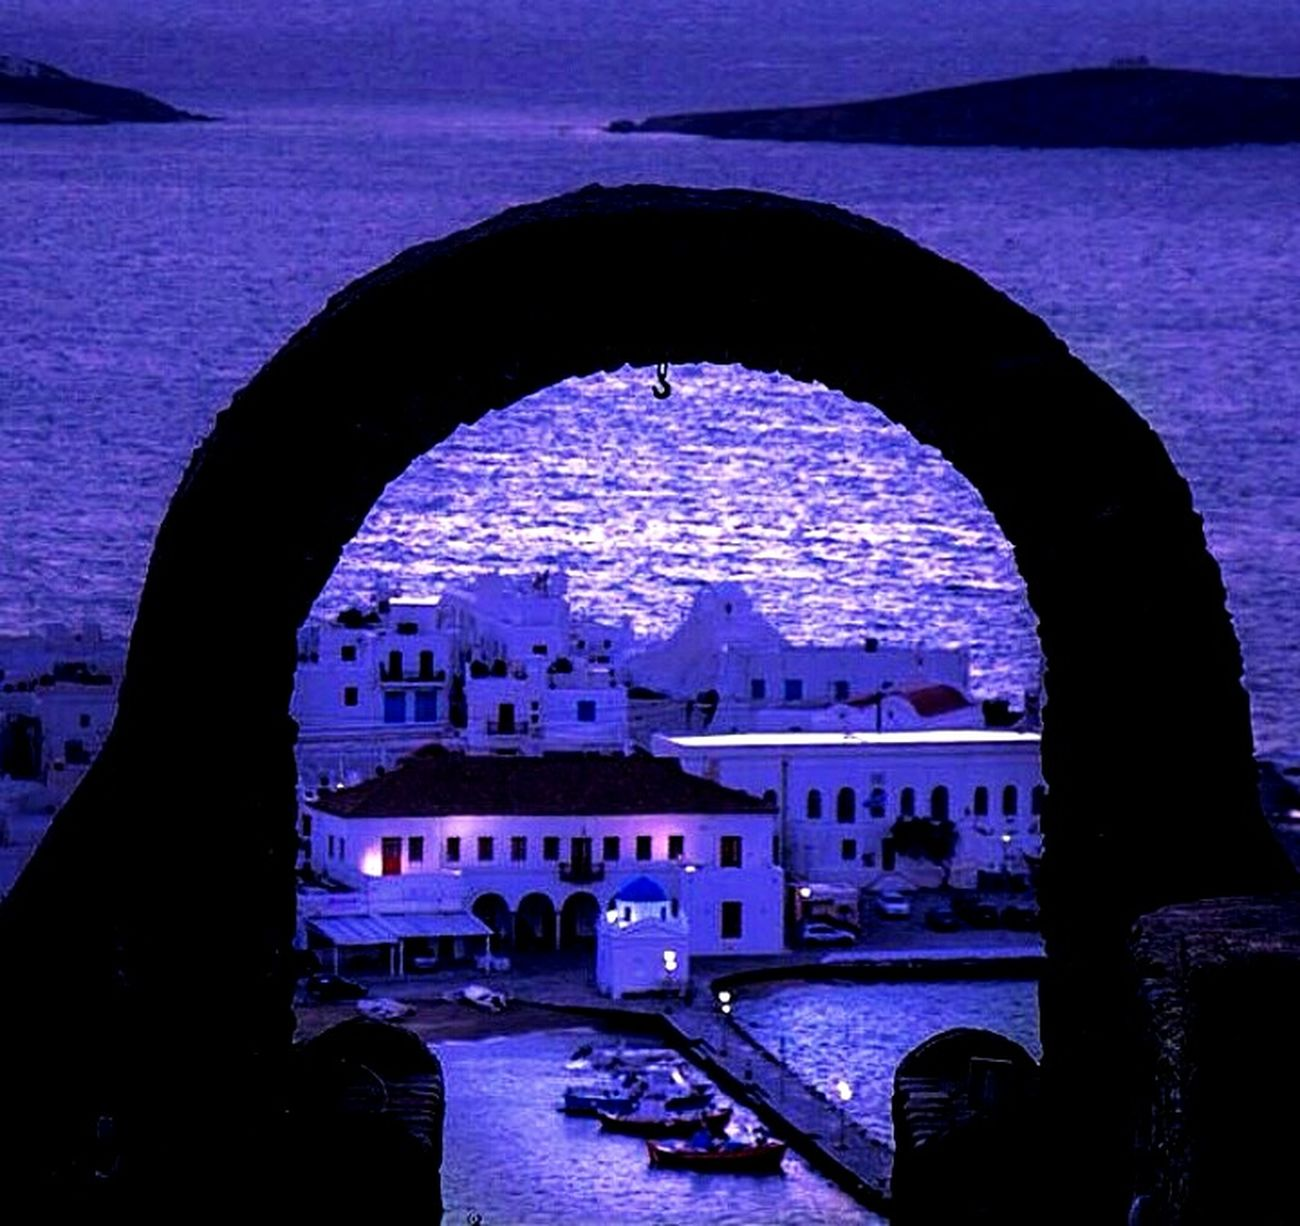 Night Nightphotography Mykonos Sea EyeEm First Eyeem Photo Moonlight Photography Travel Sea Views